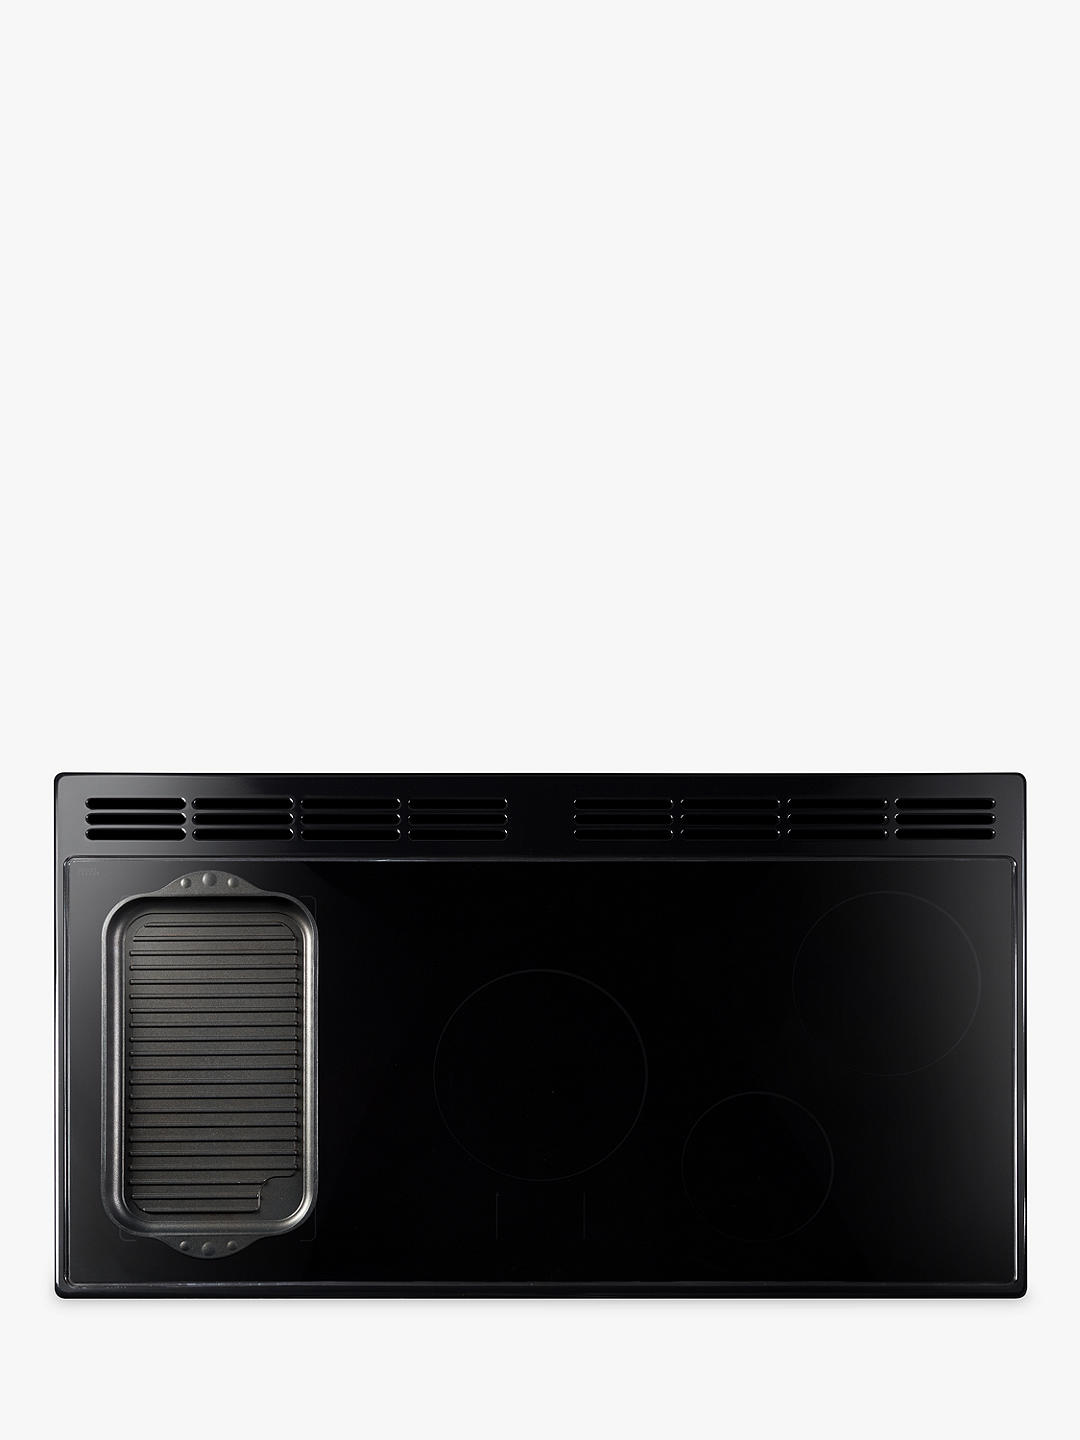 Buy Rangemaster Elan Deluxe 90 Induction Range Cooker, Black Online at johnlewis.com